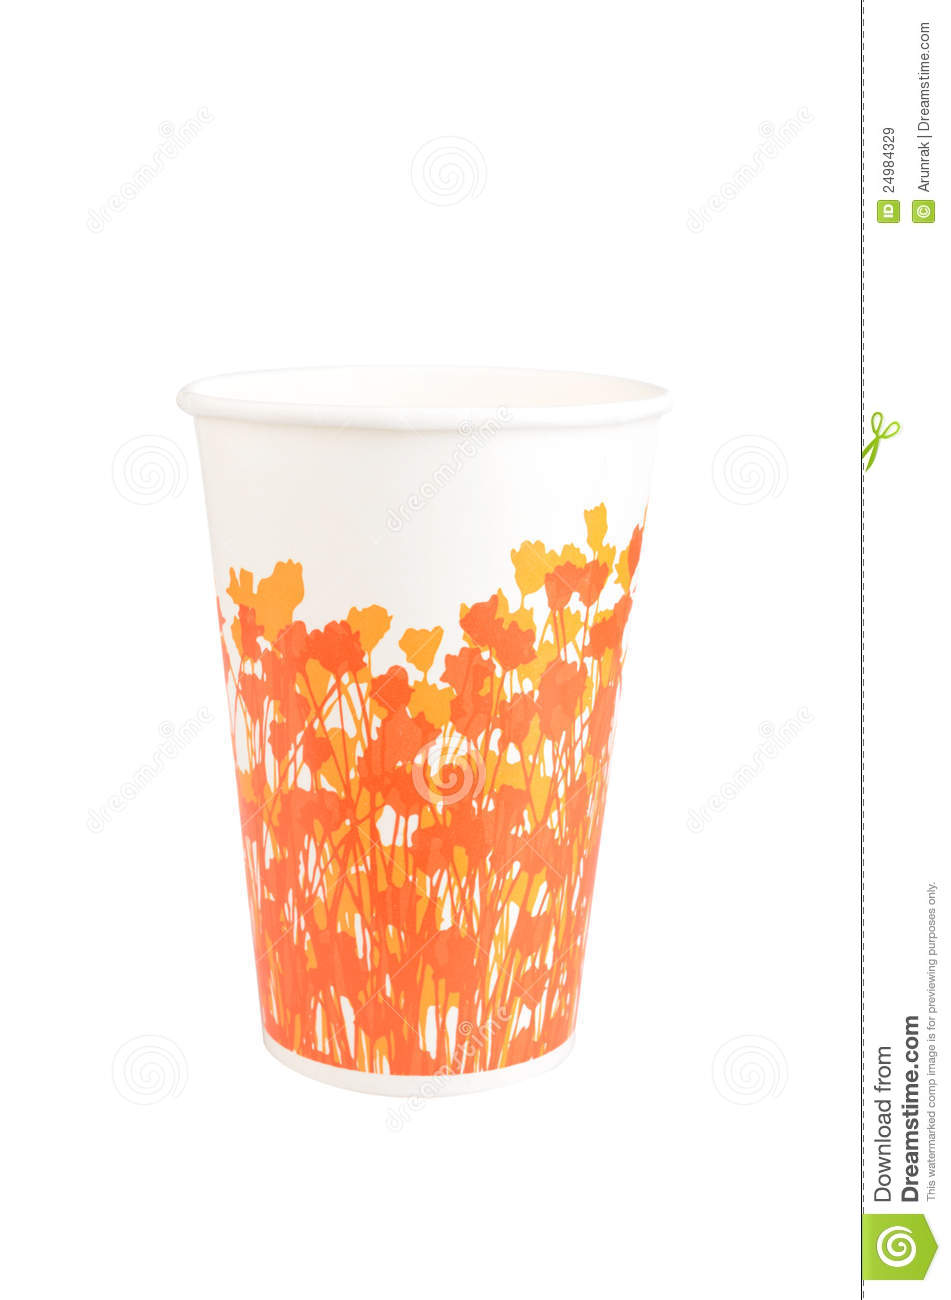 24 403 Paper Disposable Cup Photos Free Royalty Free Stock Photos From Dreamstime